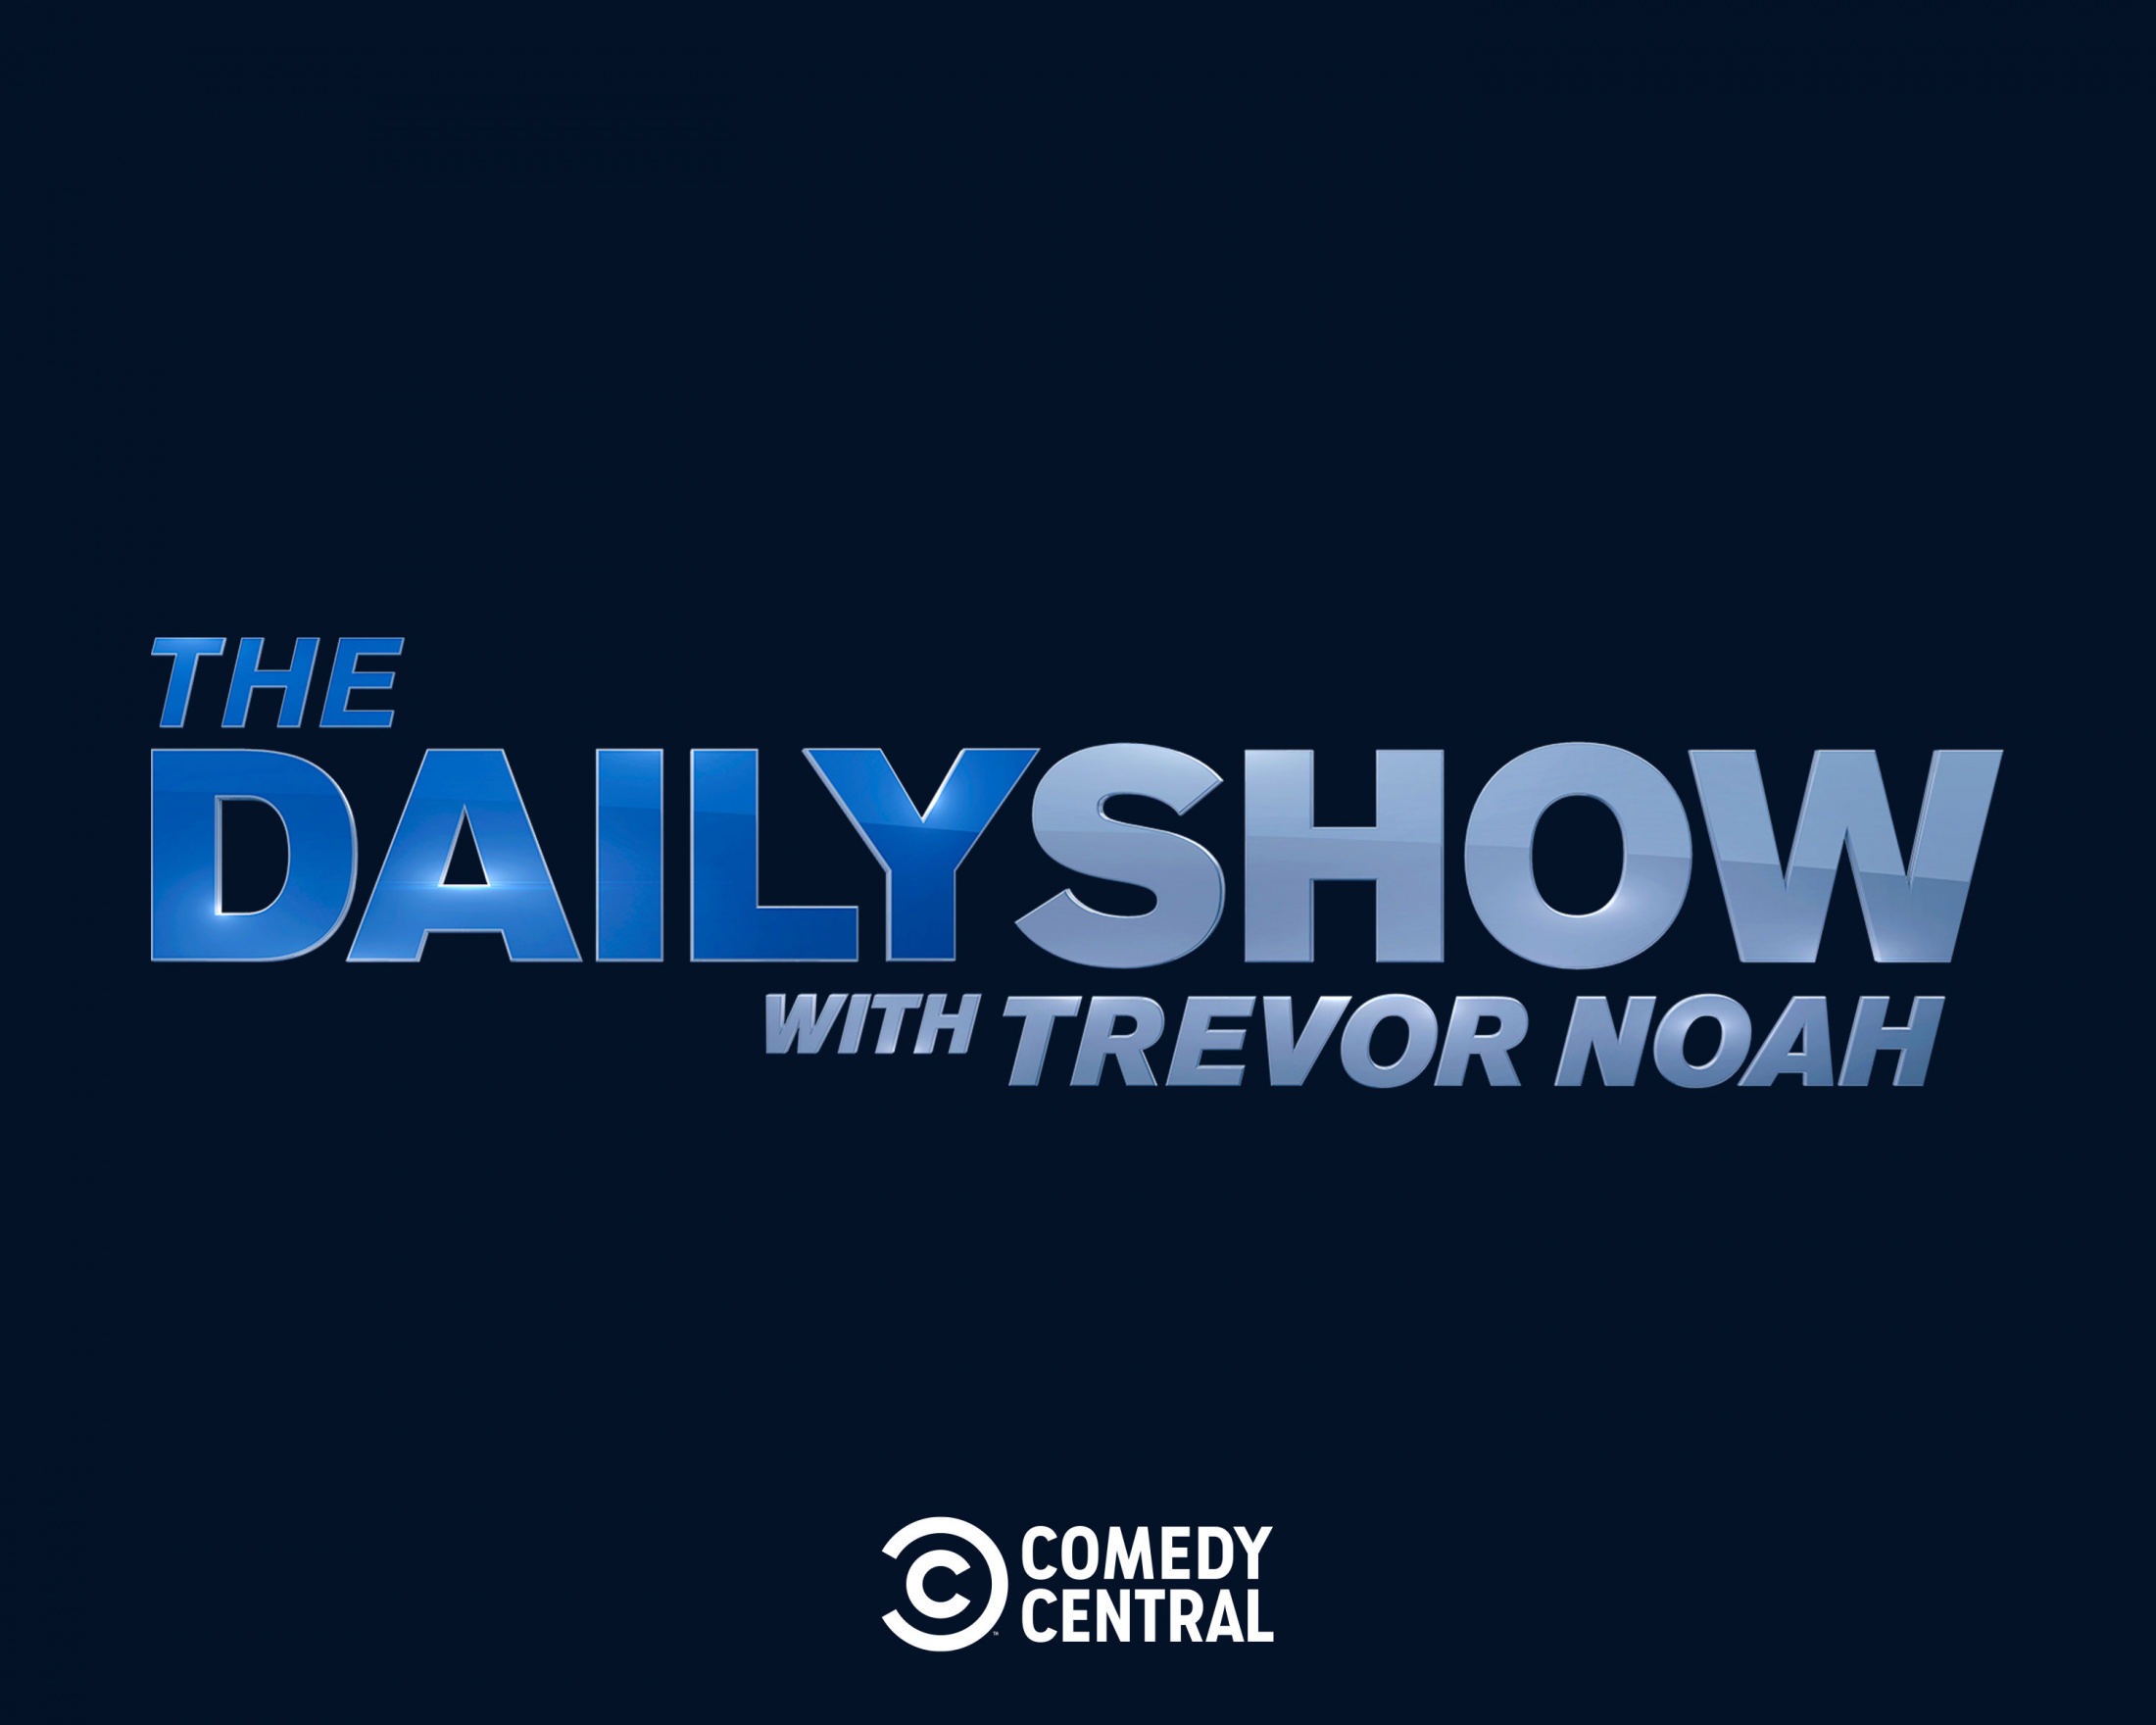 Thumbnail for The Daily Show: Fox News D.C. Twitter Library Campaign